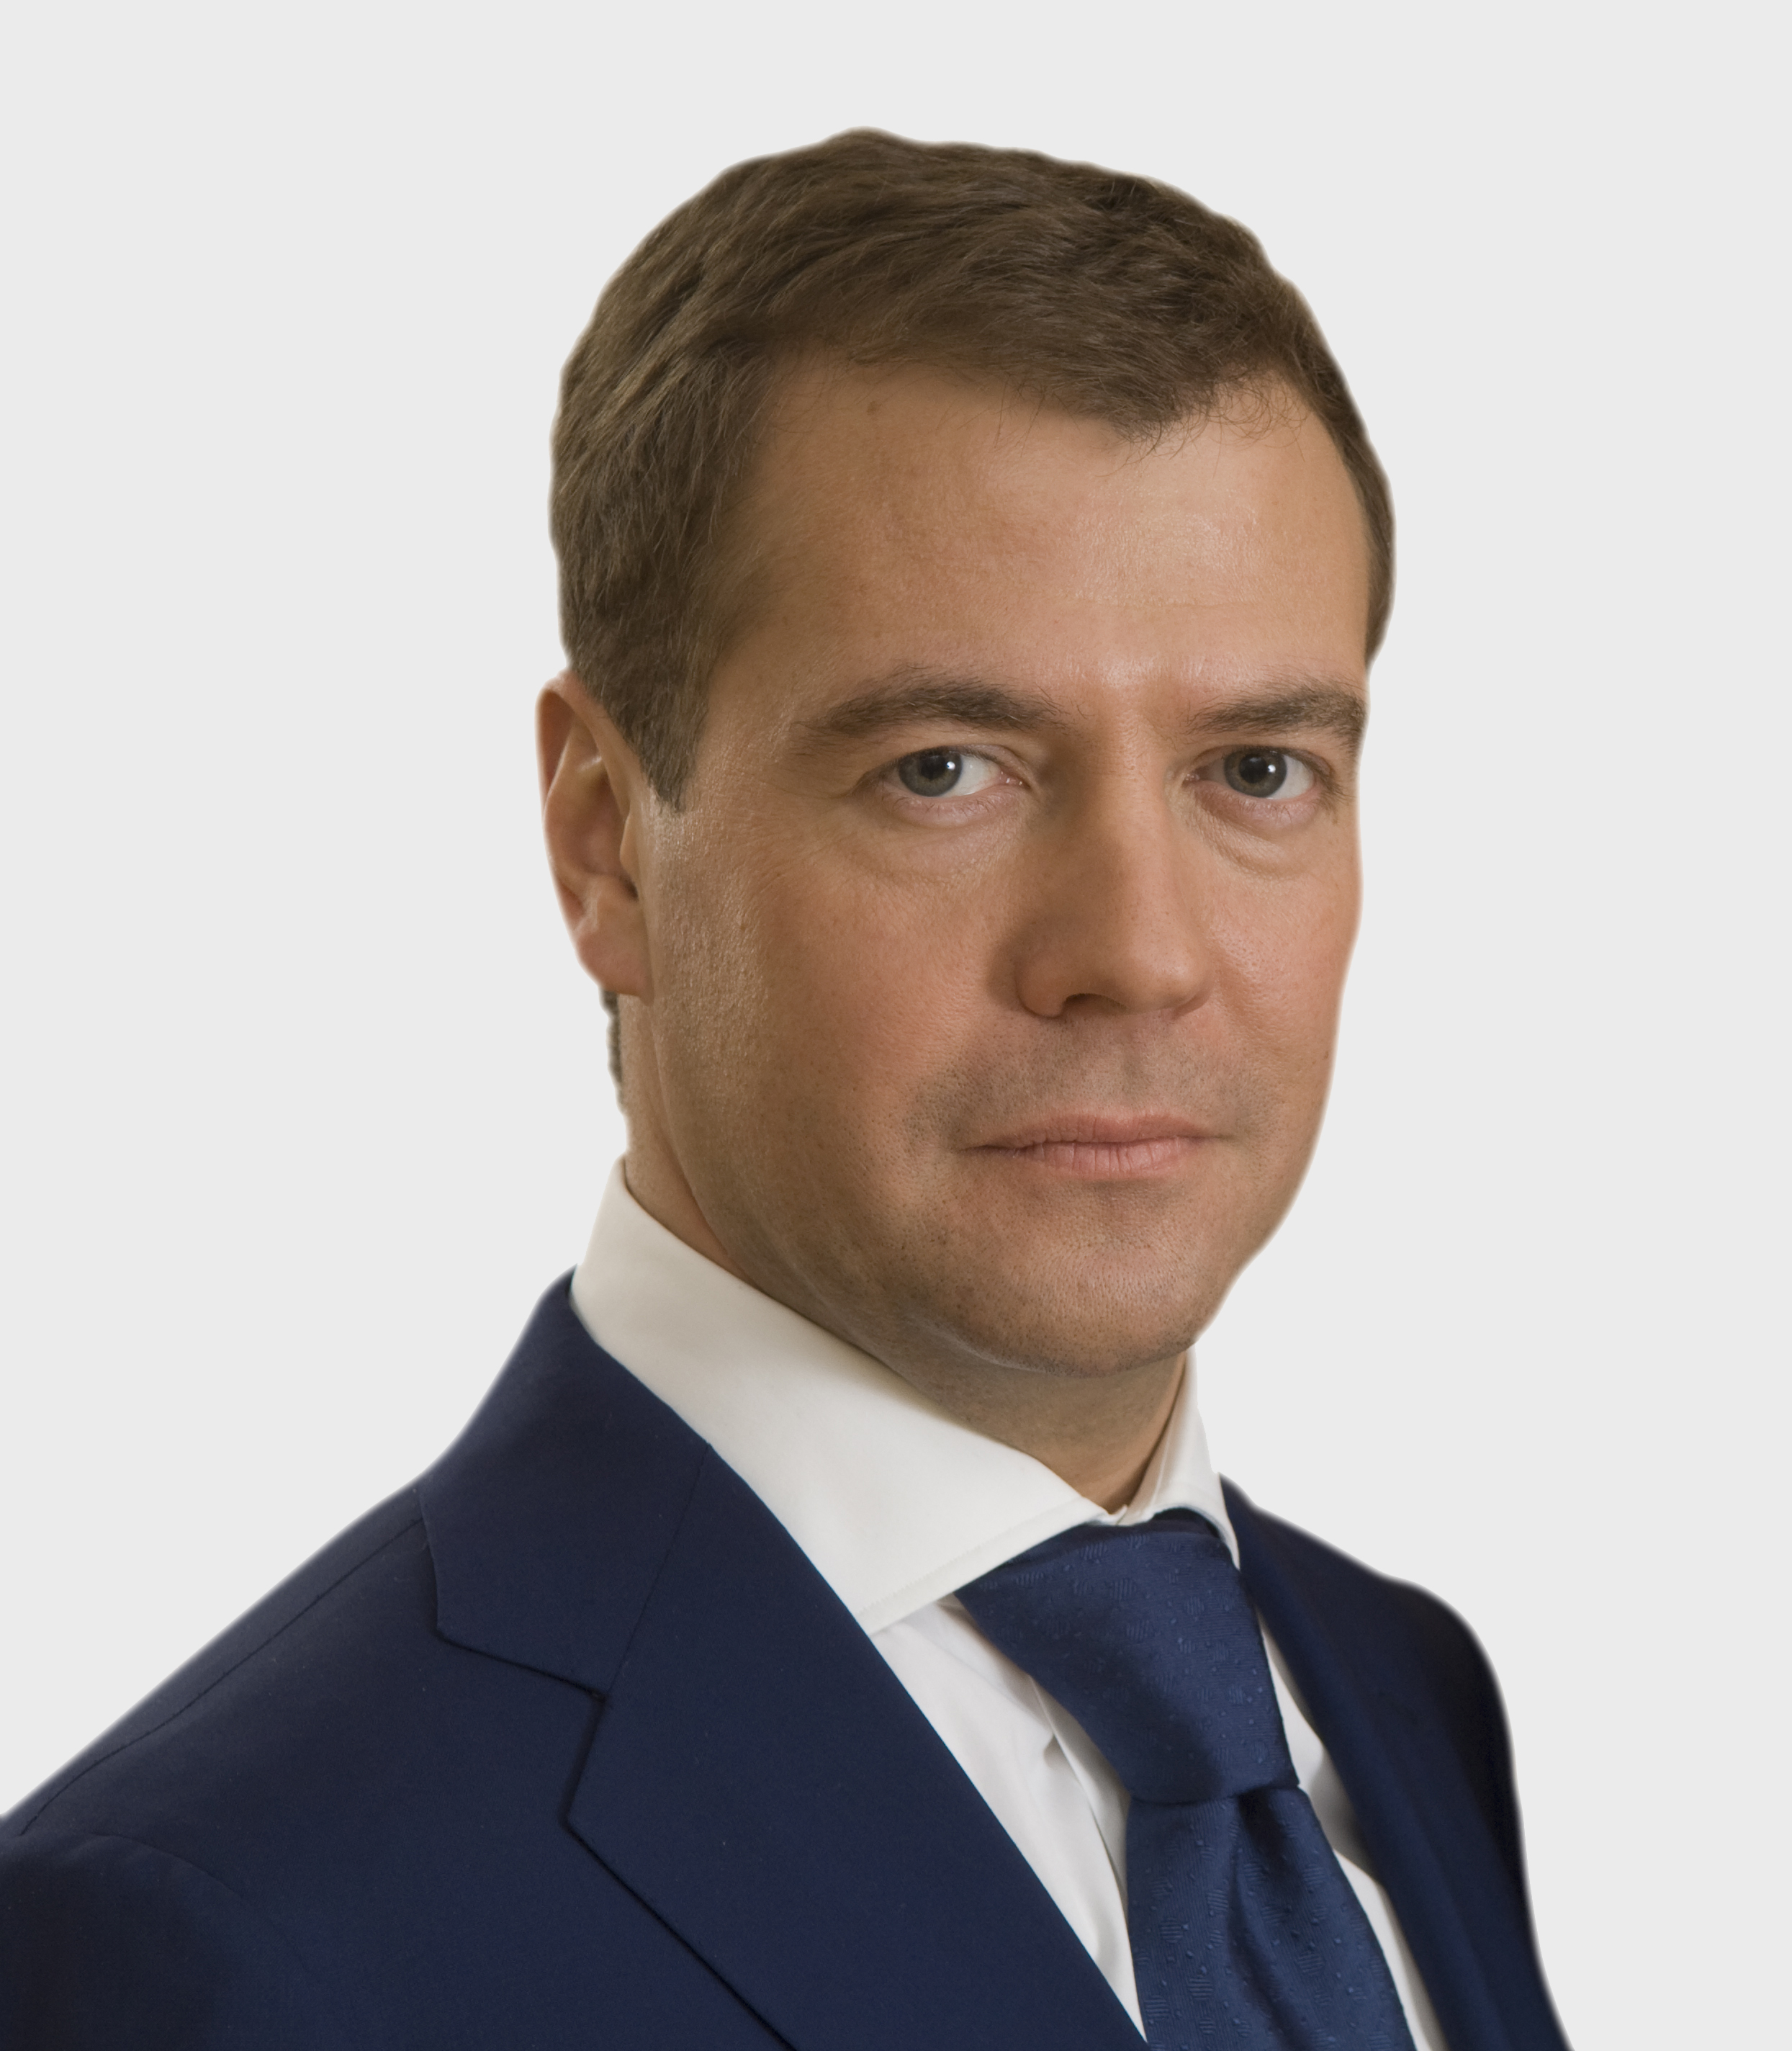 http://upload.wikimedia.org/wikipedia/commons/b/b8/Dmitry_Medvedev_official_large_photo_-1.jpg